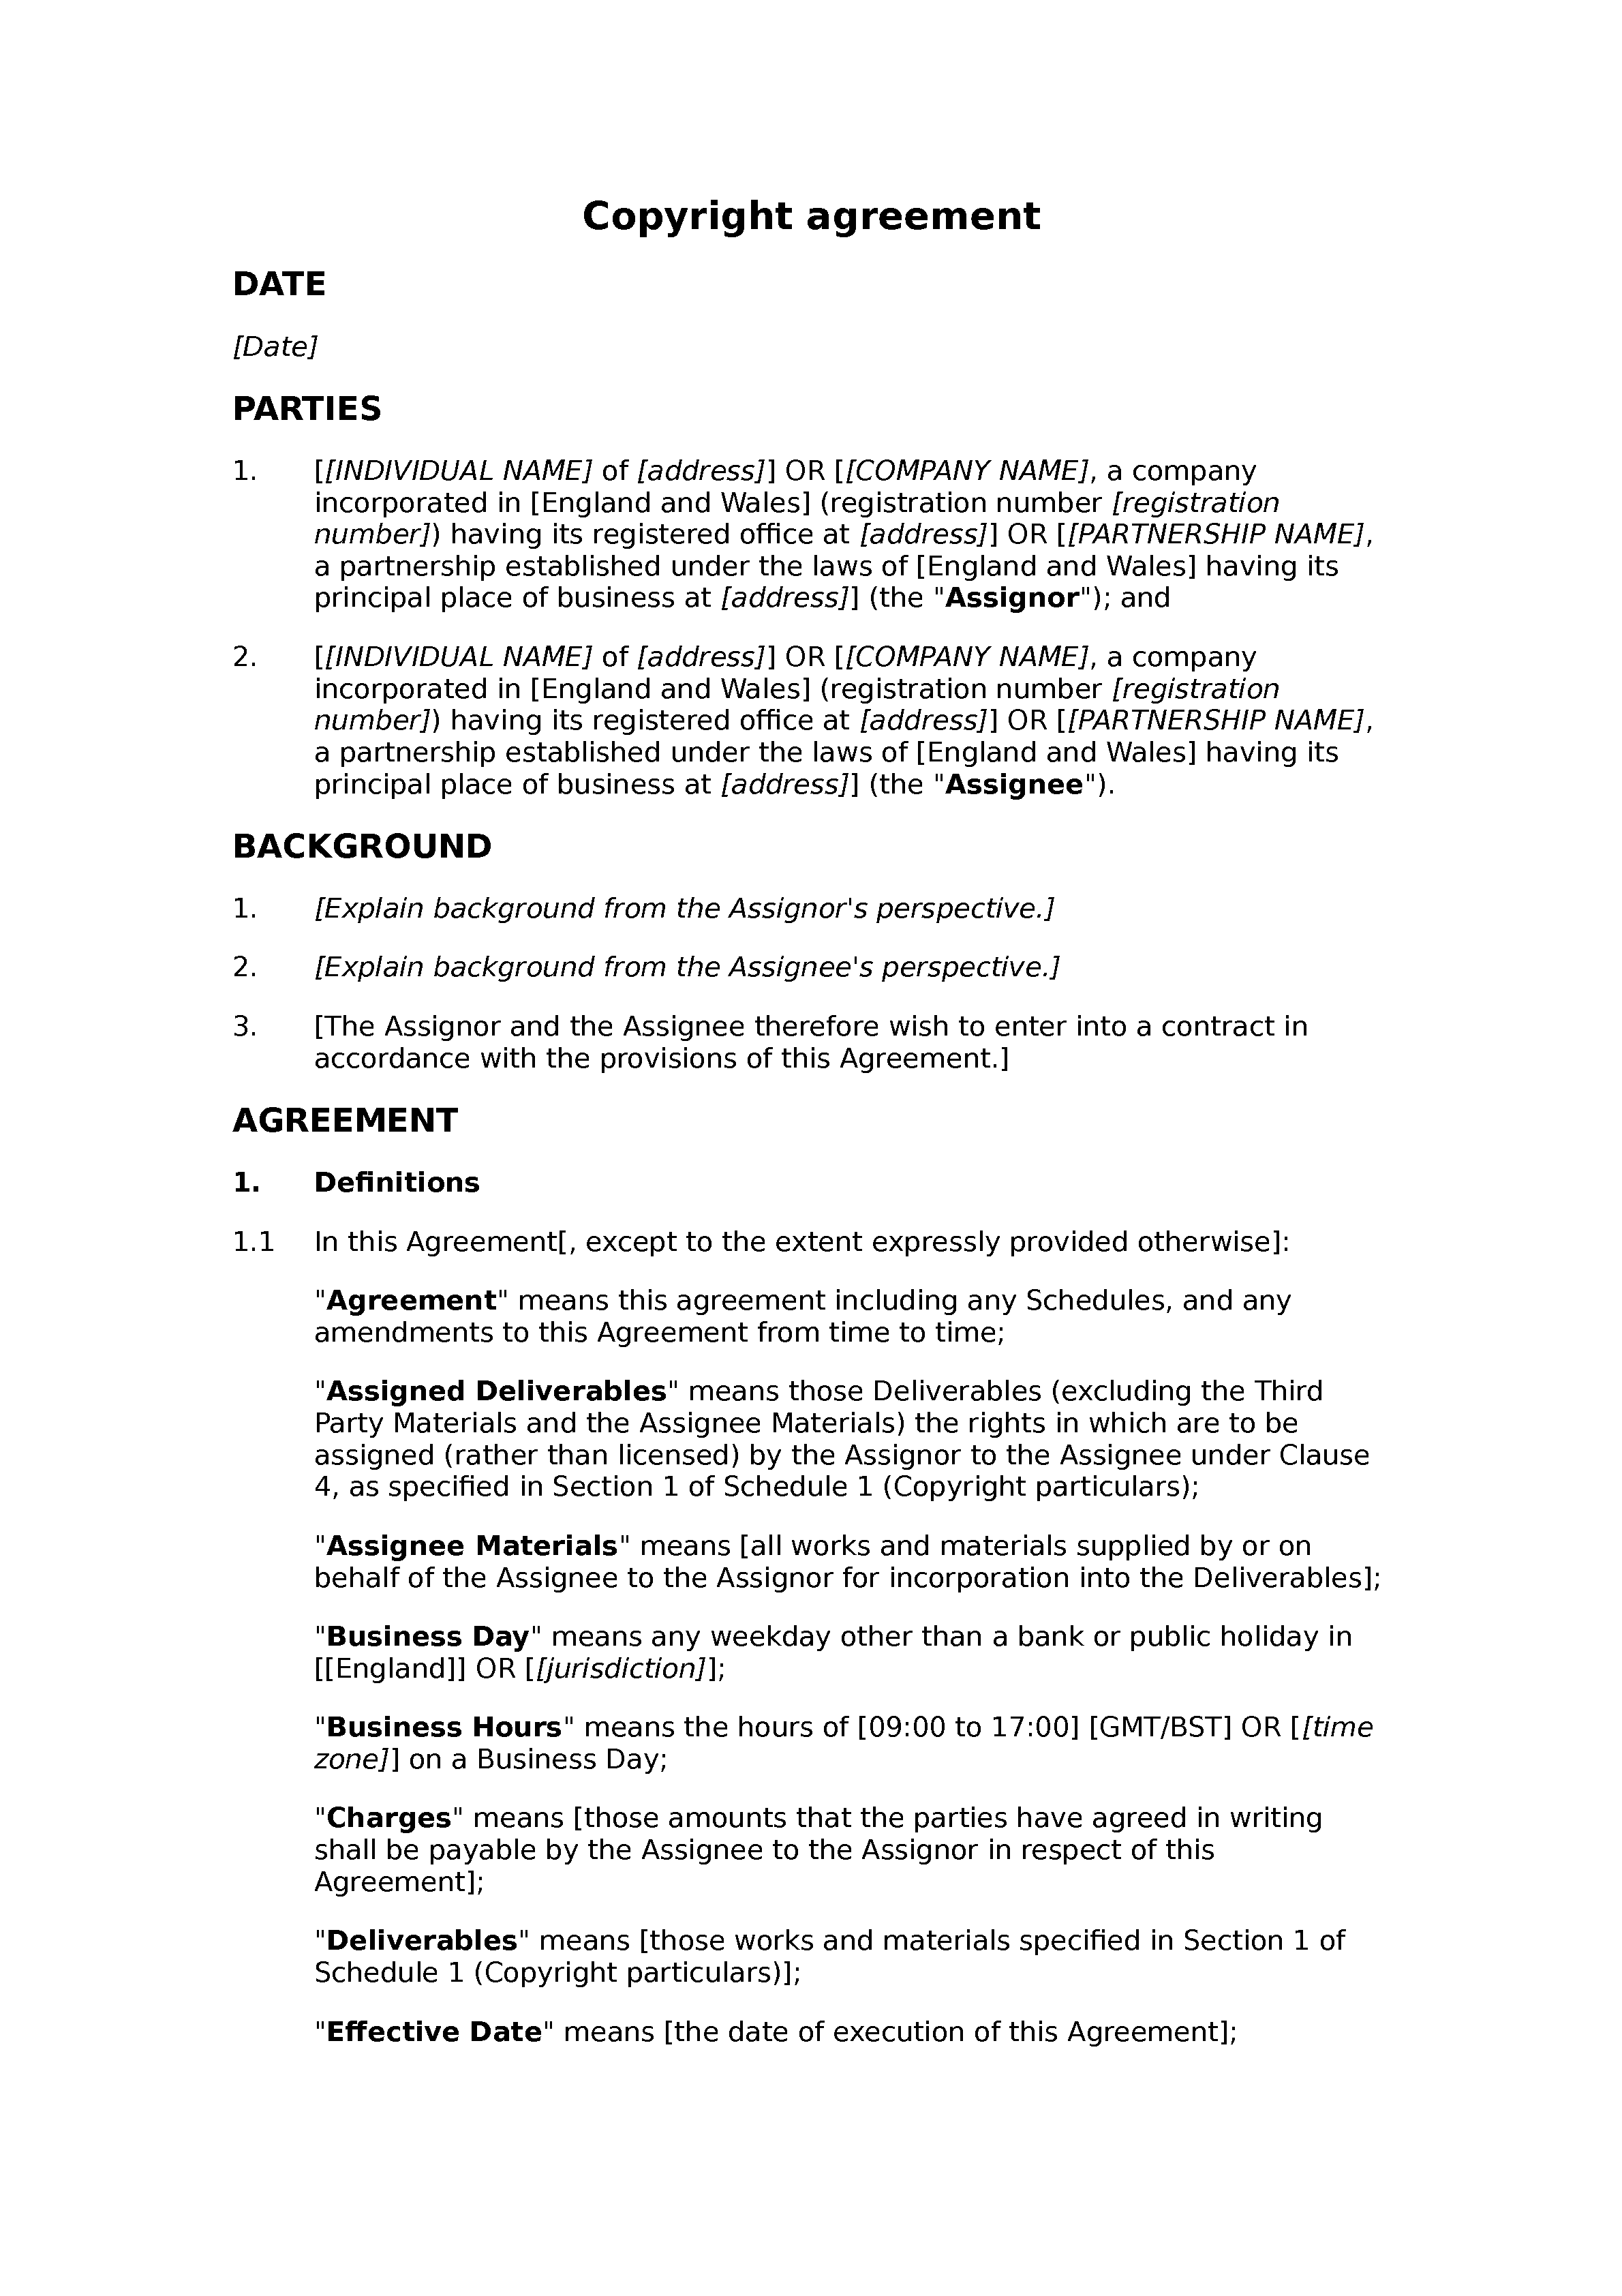 Copyright agreement document preview